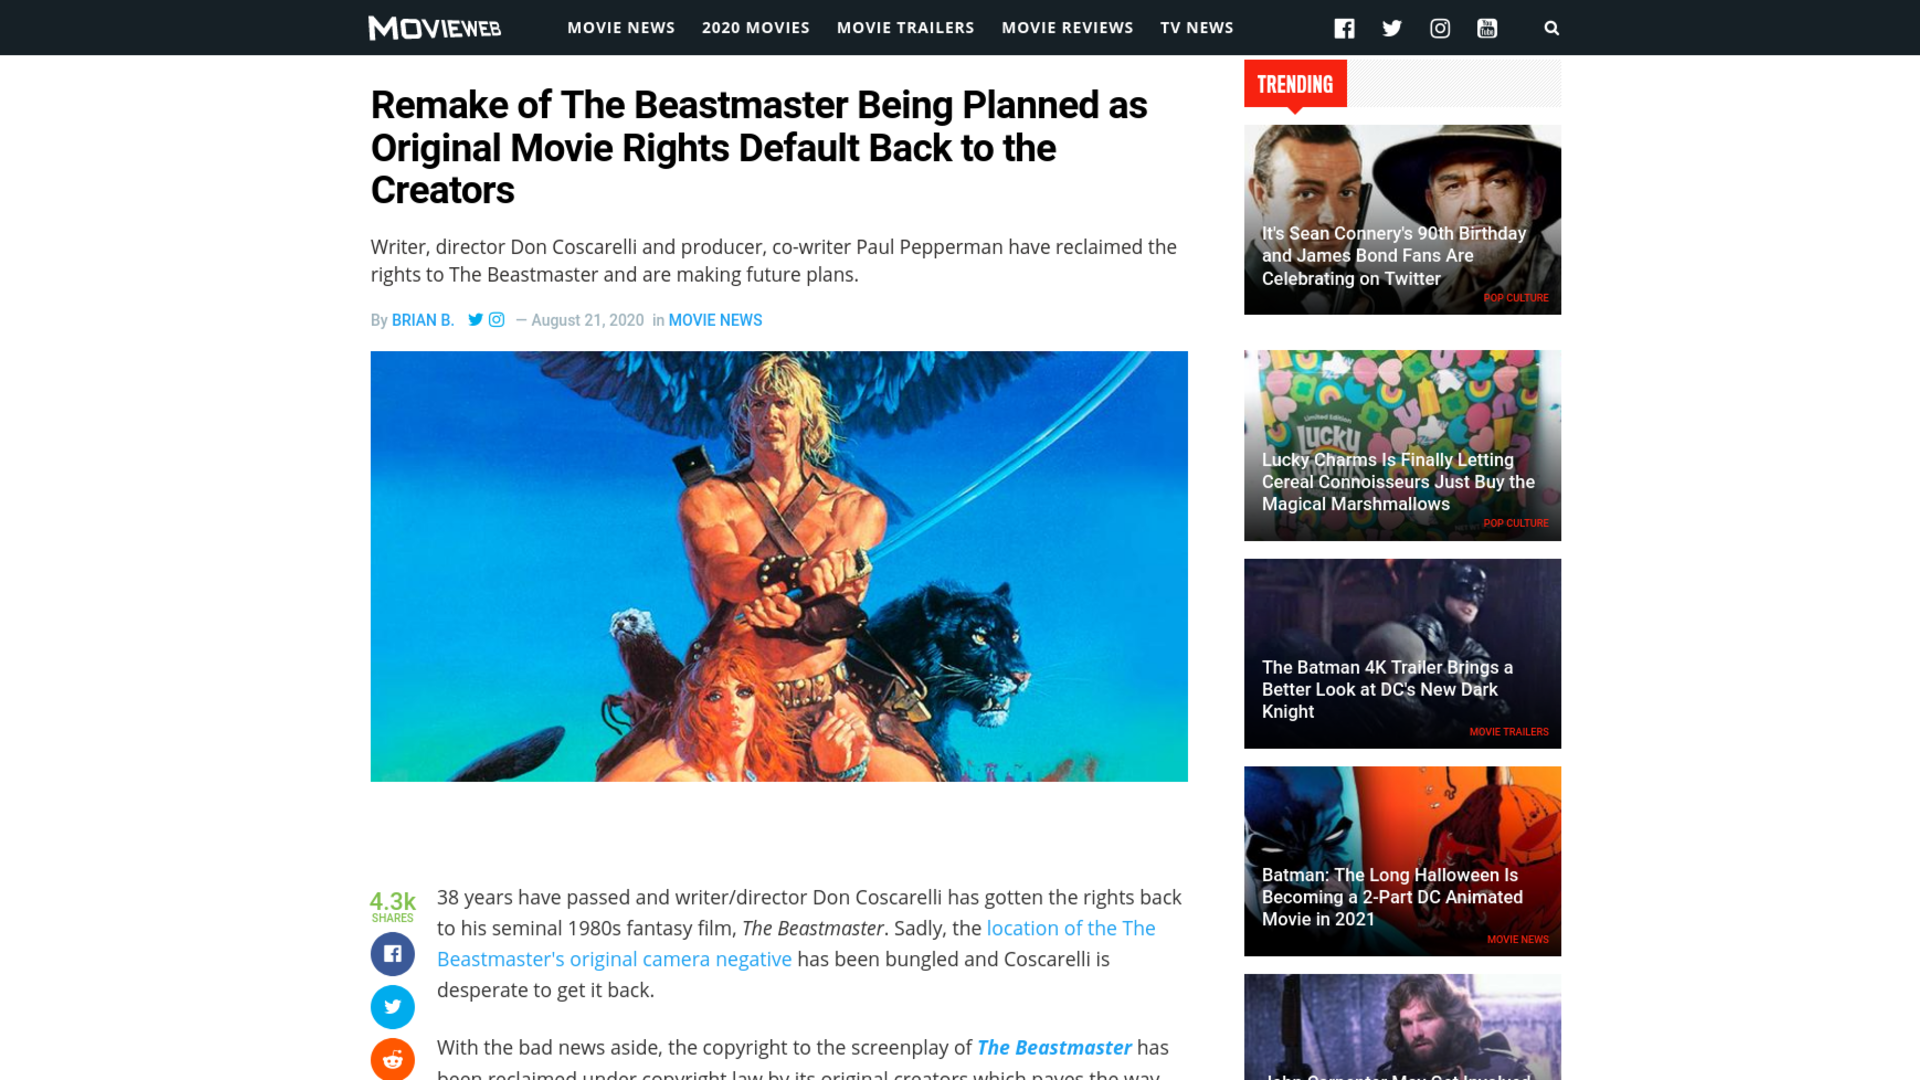 Fairness Rocks News Remake of The Beastmaster Being Planned as Original Movie Rights Default Back to the Creators